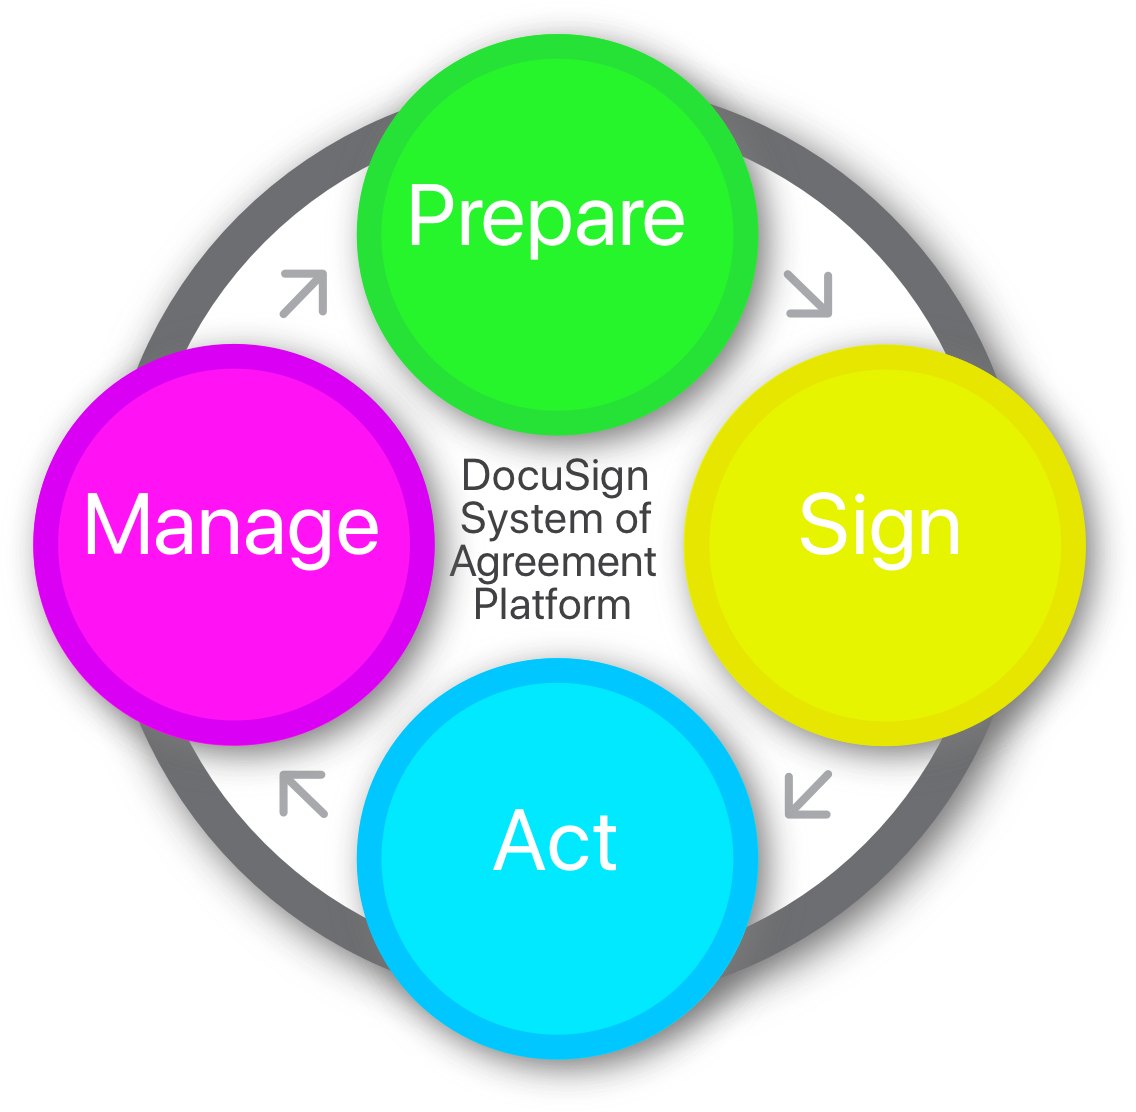 The DocuSign System of Agreement Platform supports all stages of the agreement lifecycle: preparation, signing, acting and managing.